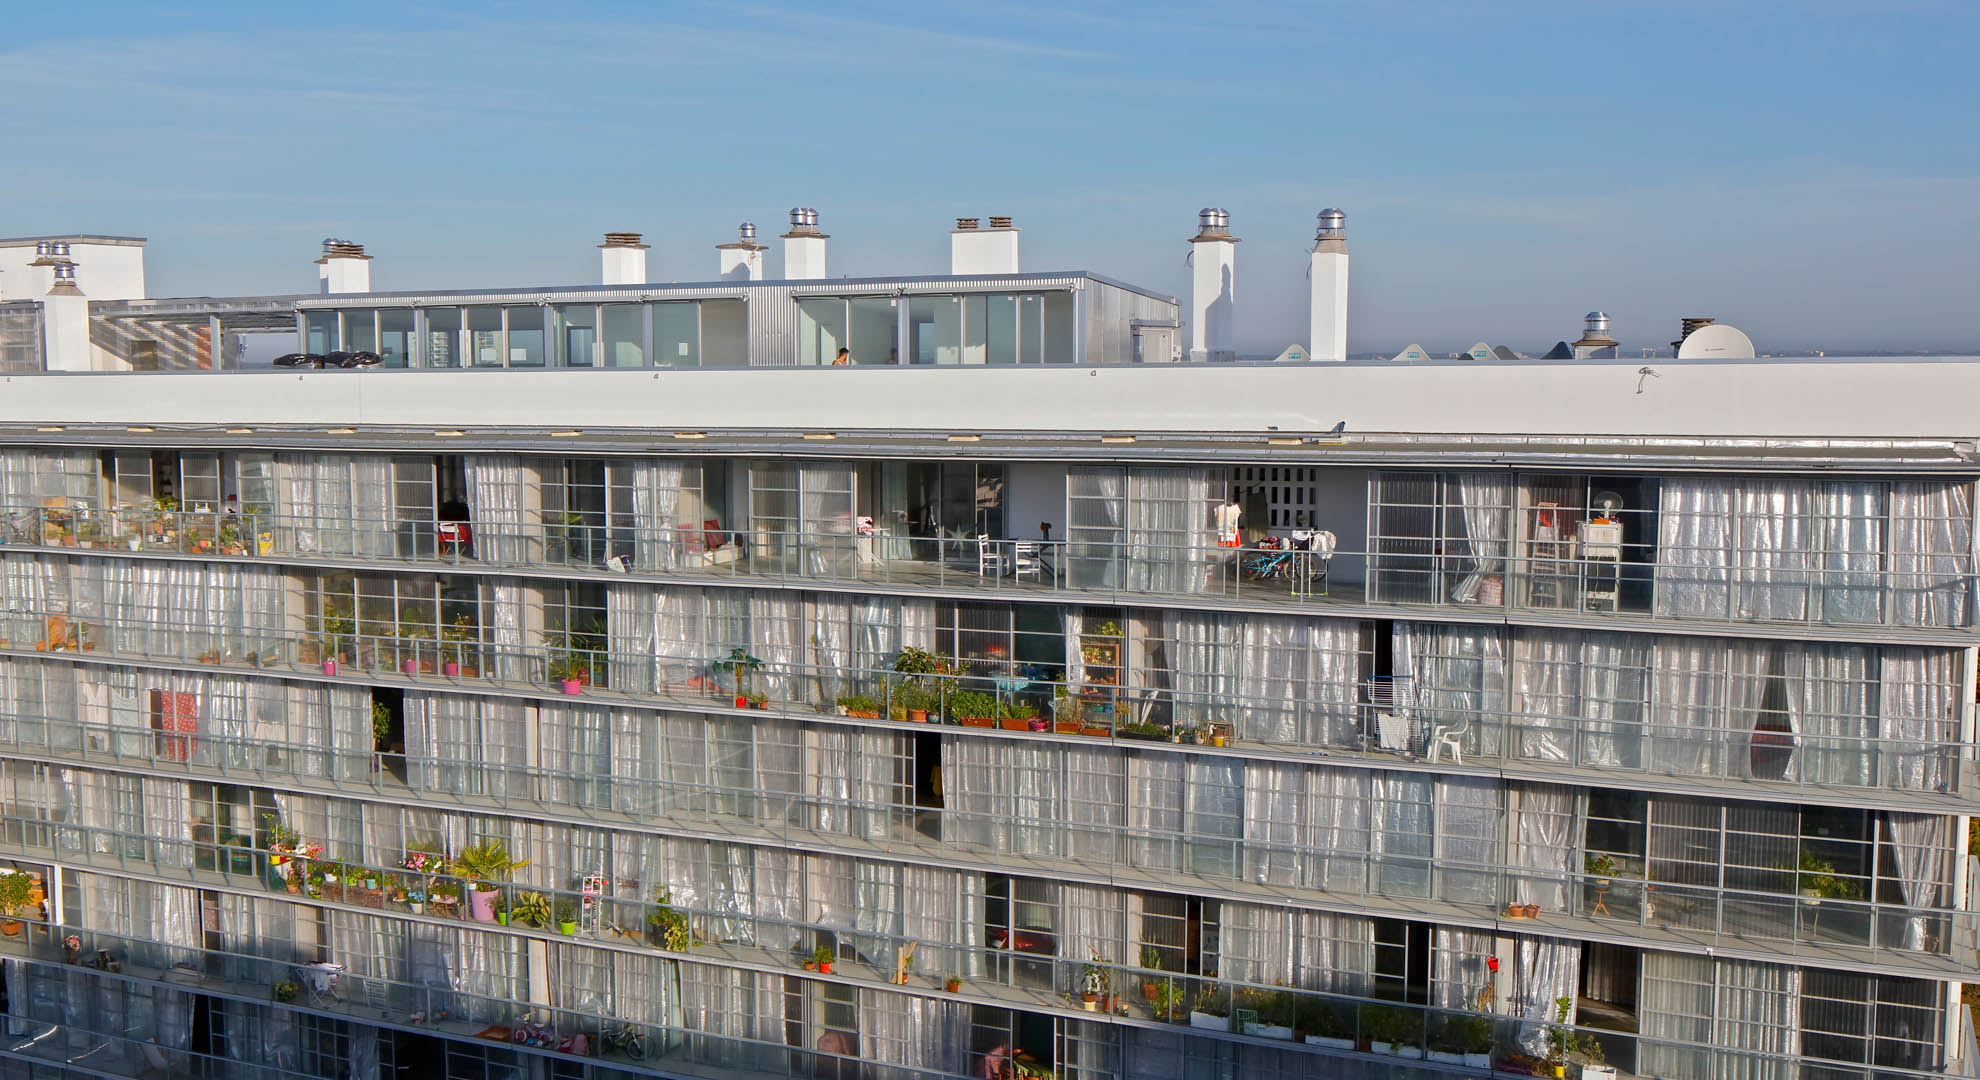 Transformation of 530 houses in Bordeaux, France.